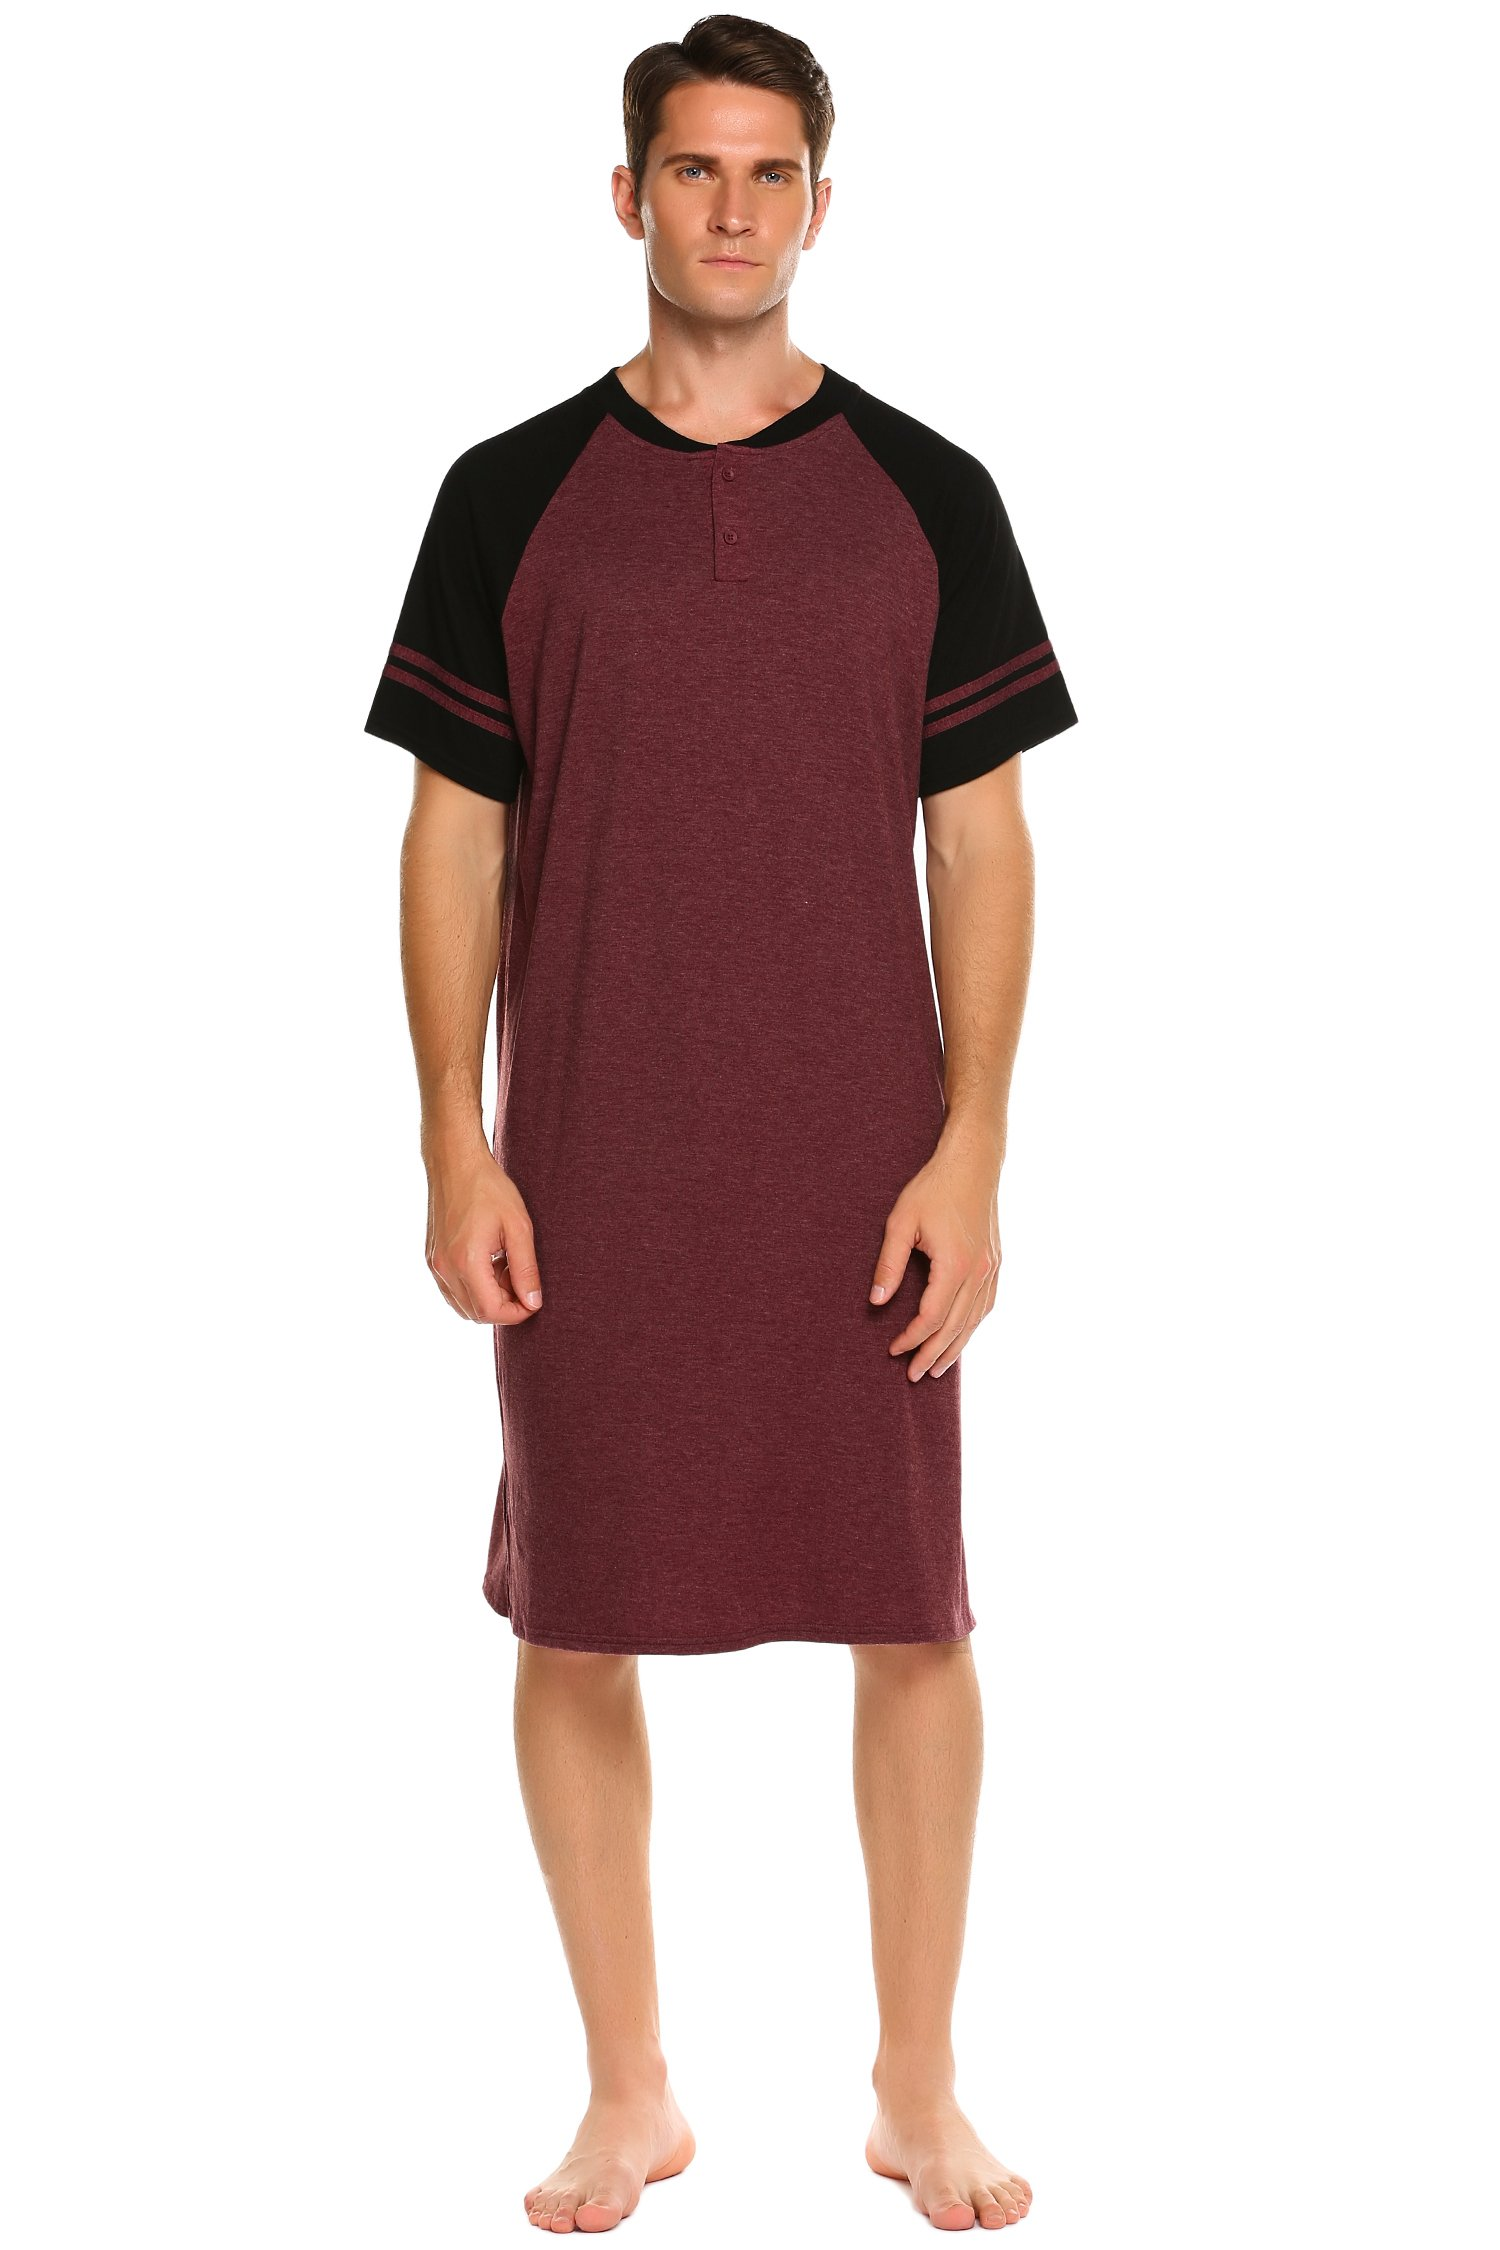 Ekouaer Men's Sleepwear Cotton Loungewear Soft Nightshirt (Wine Red, X-Large)